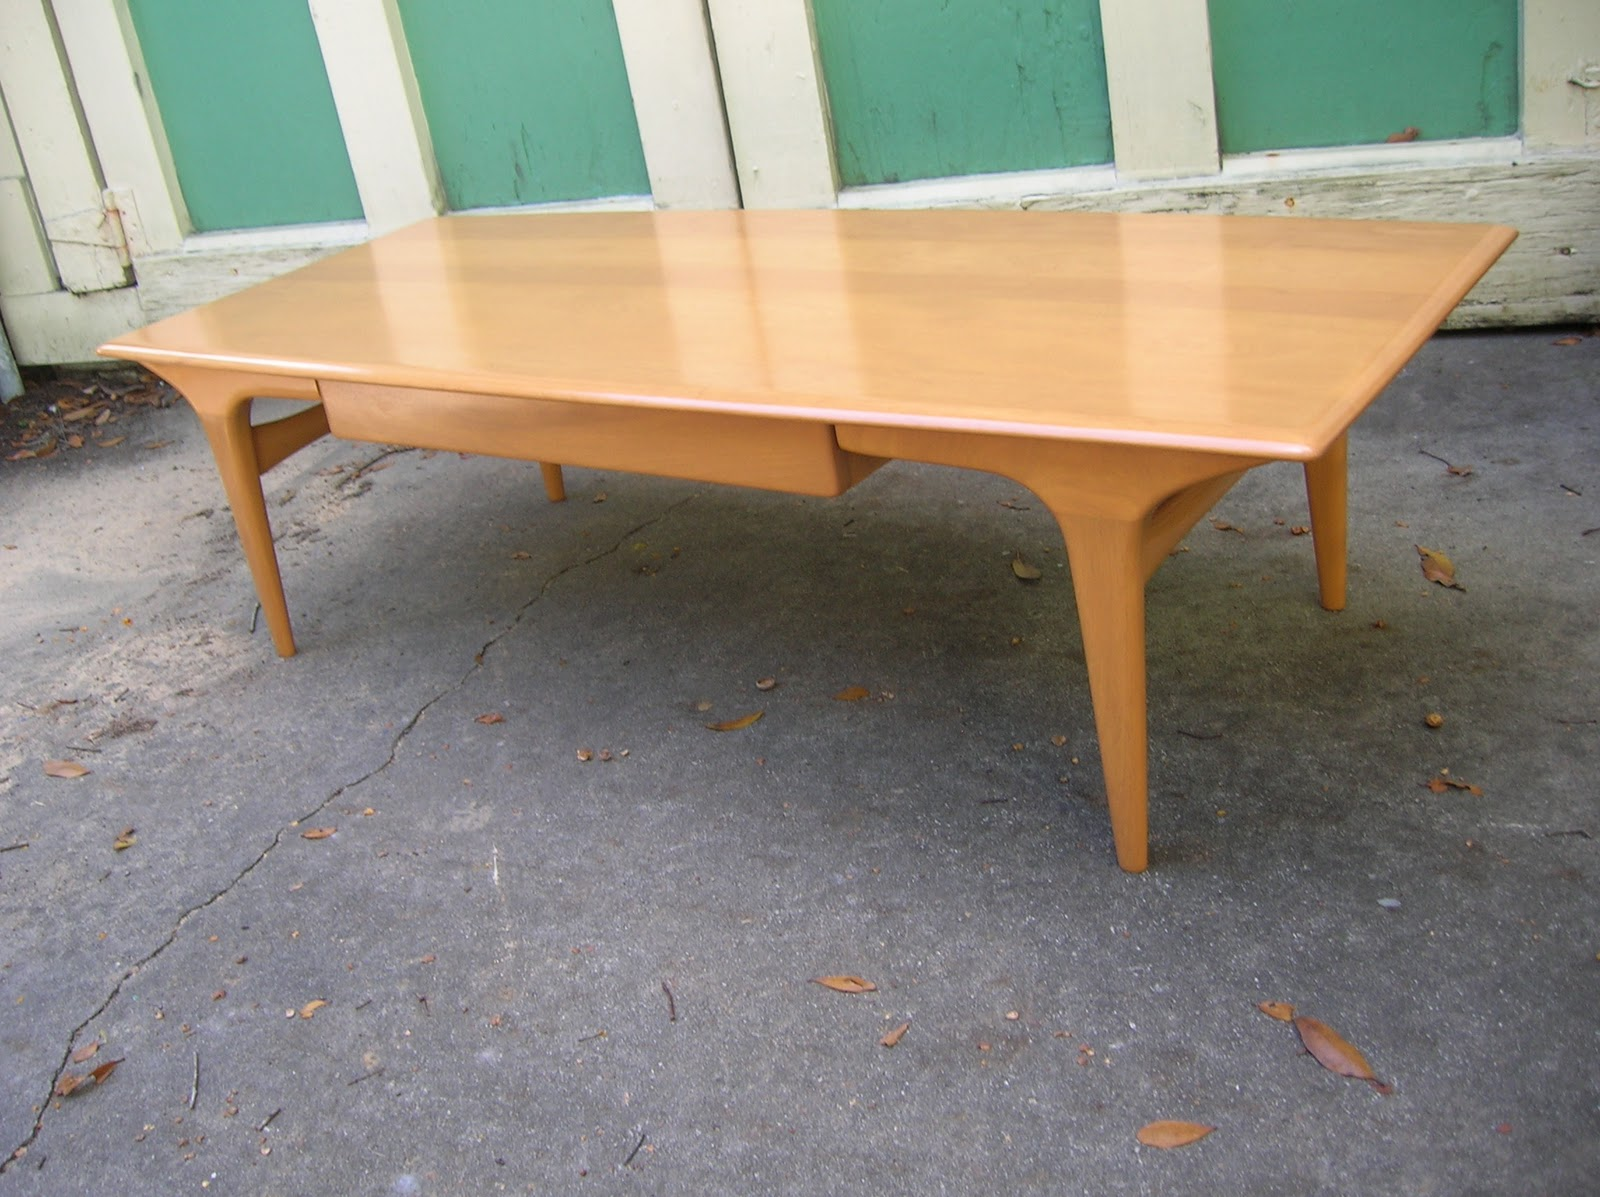 A Modern Line Heywood Wakefield refinishing and other midcentury